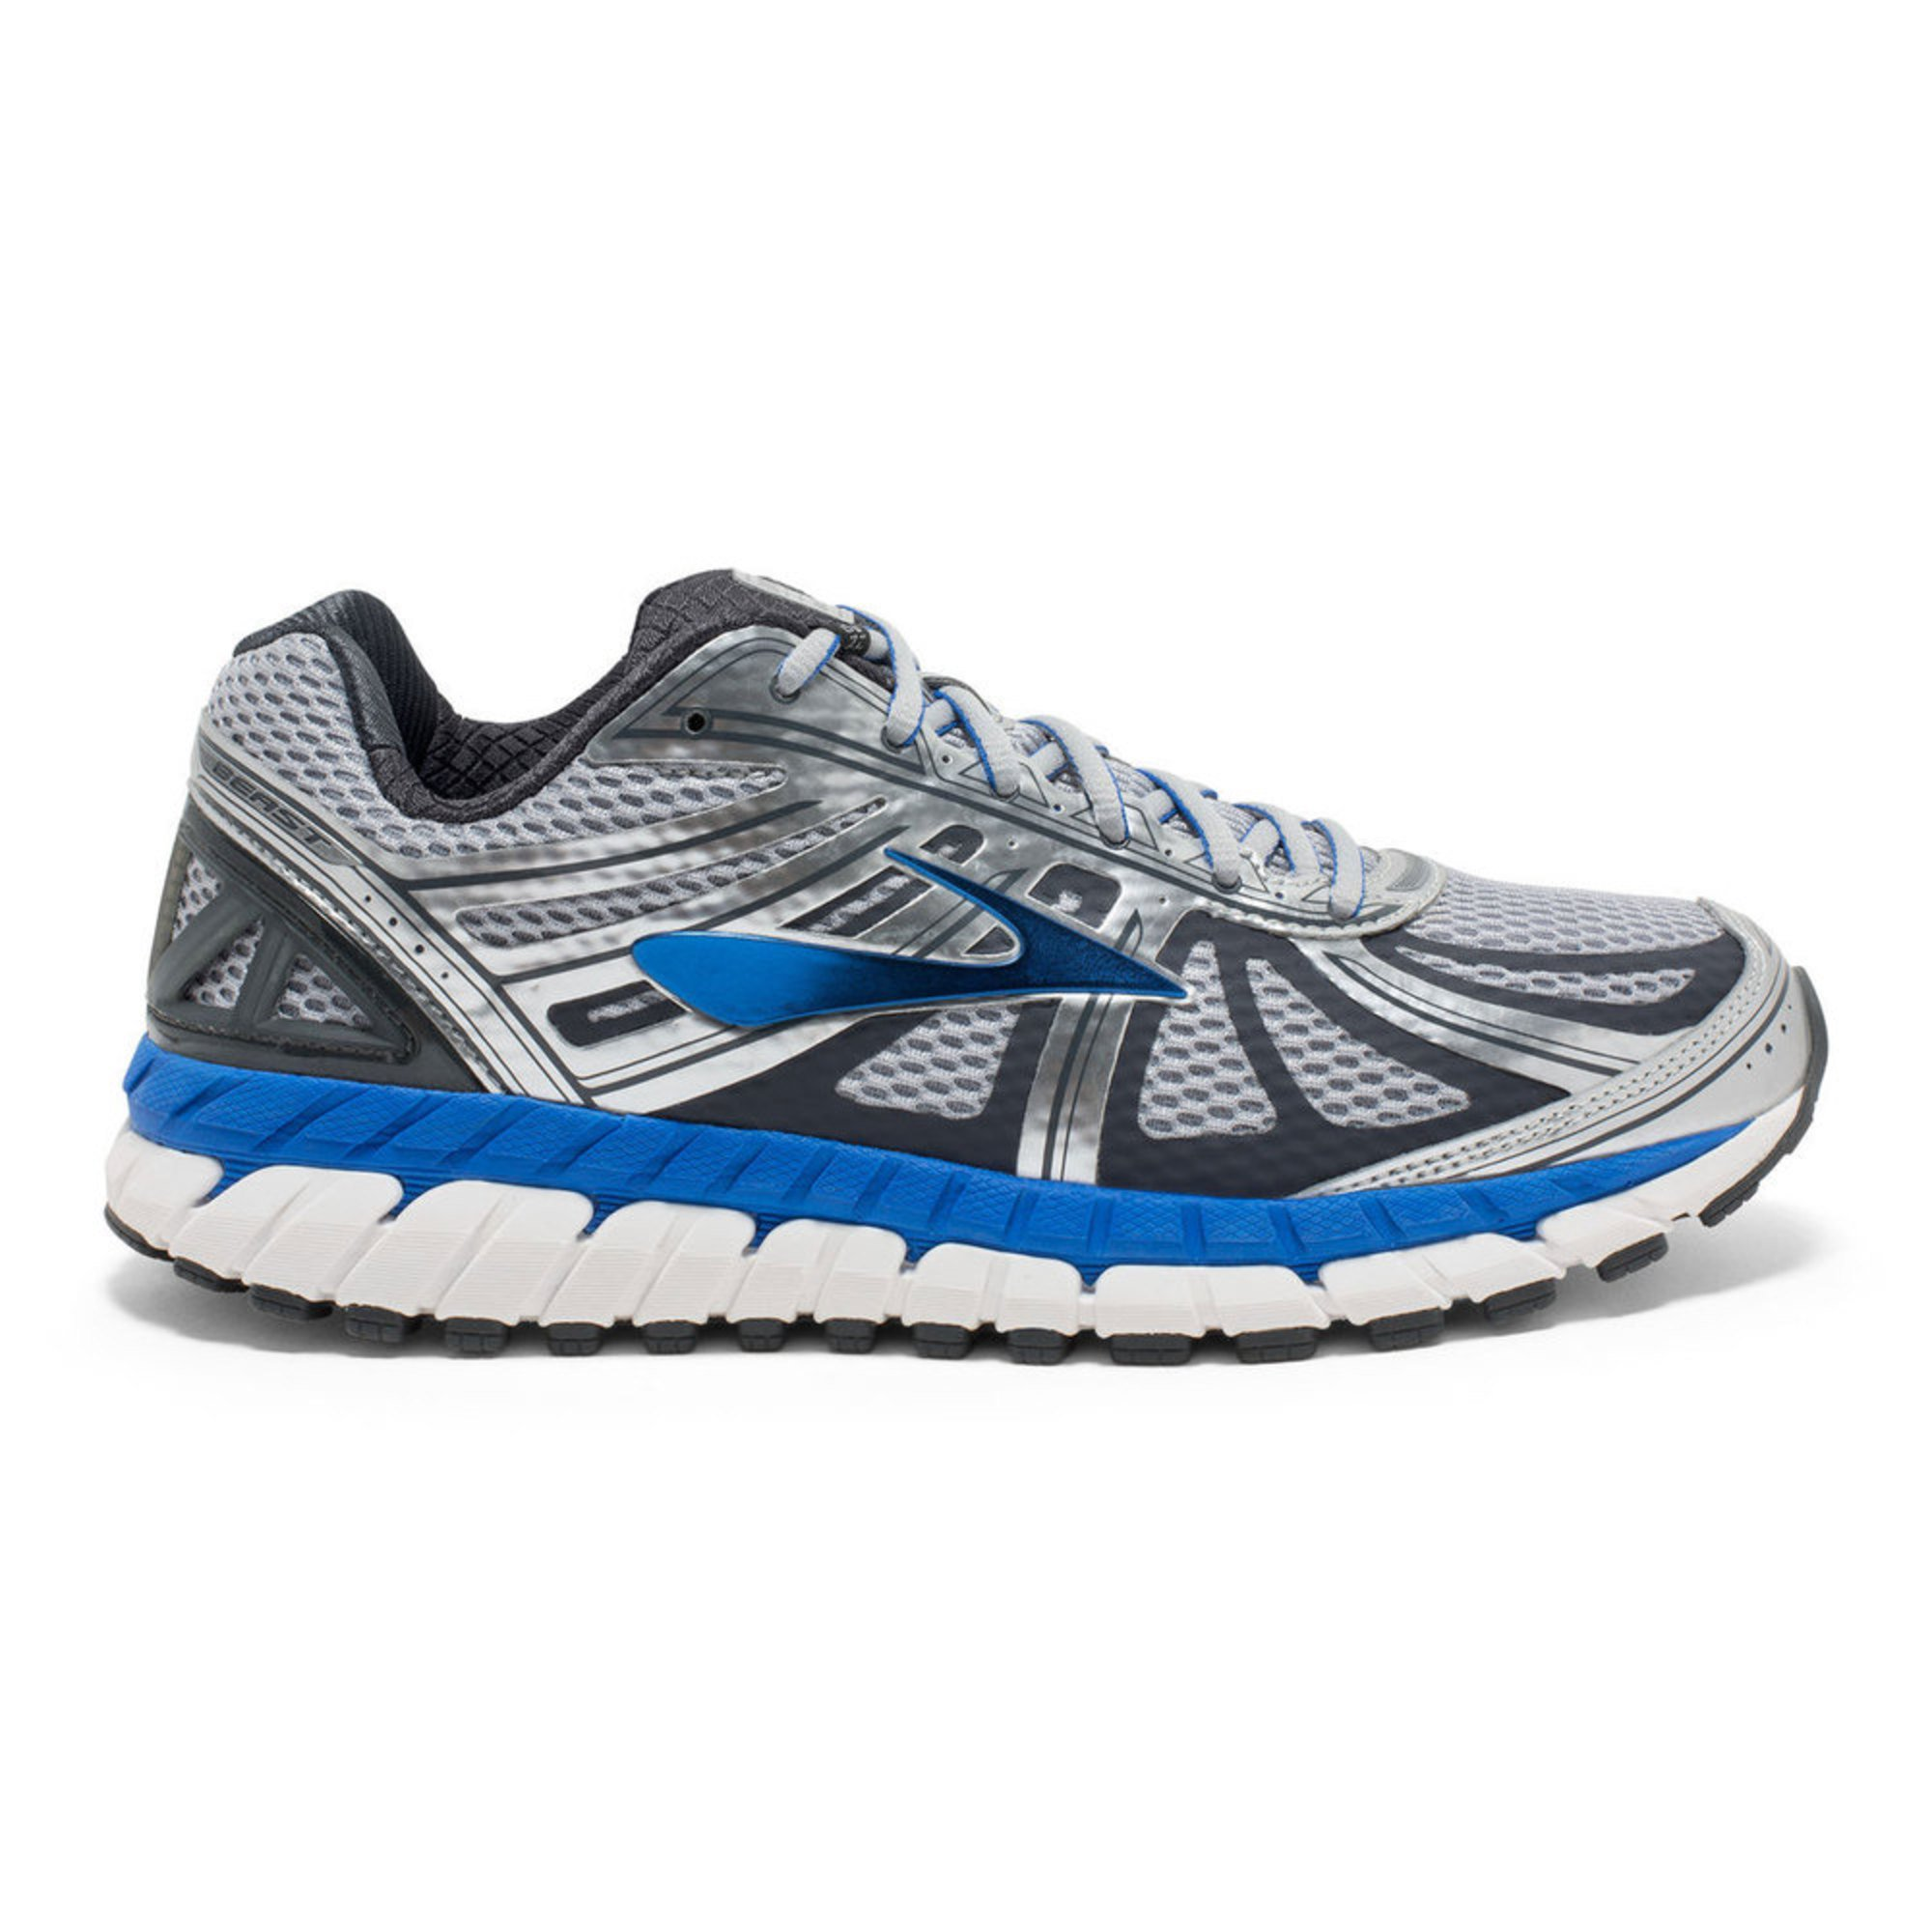 Shop a wide selection of Brooks Men's Beast 18 Running Shoes at DICKS Sporting Goods and order online for the finest quality products from the top brands you 100loli.tk: $